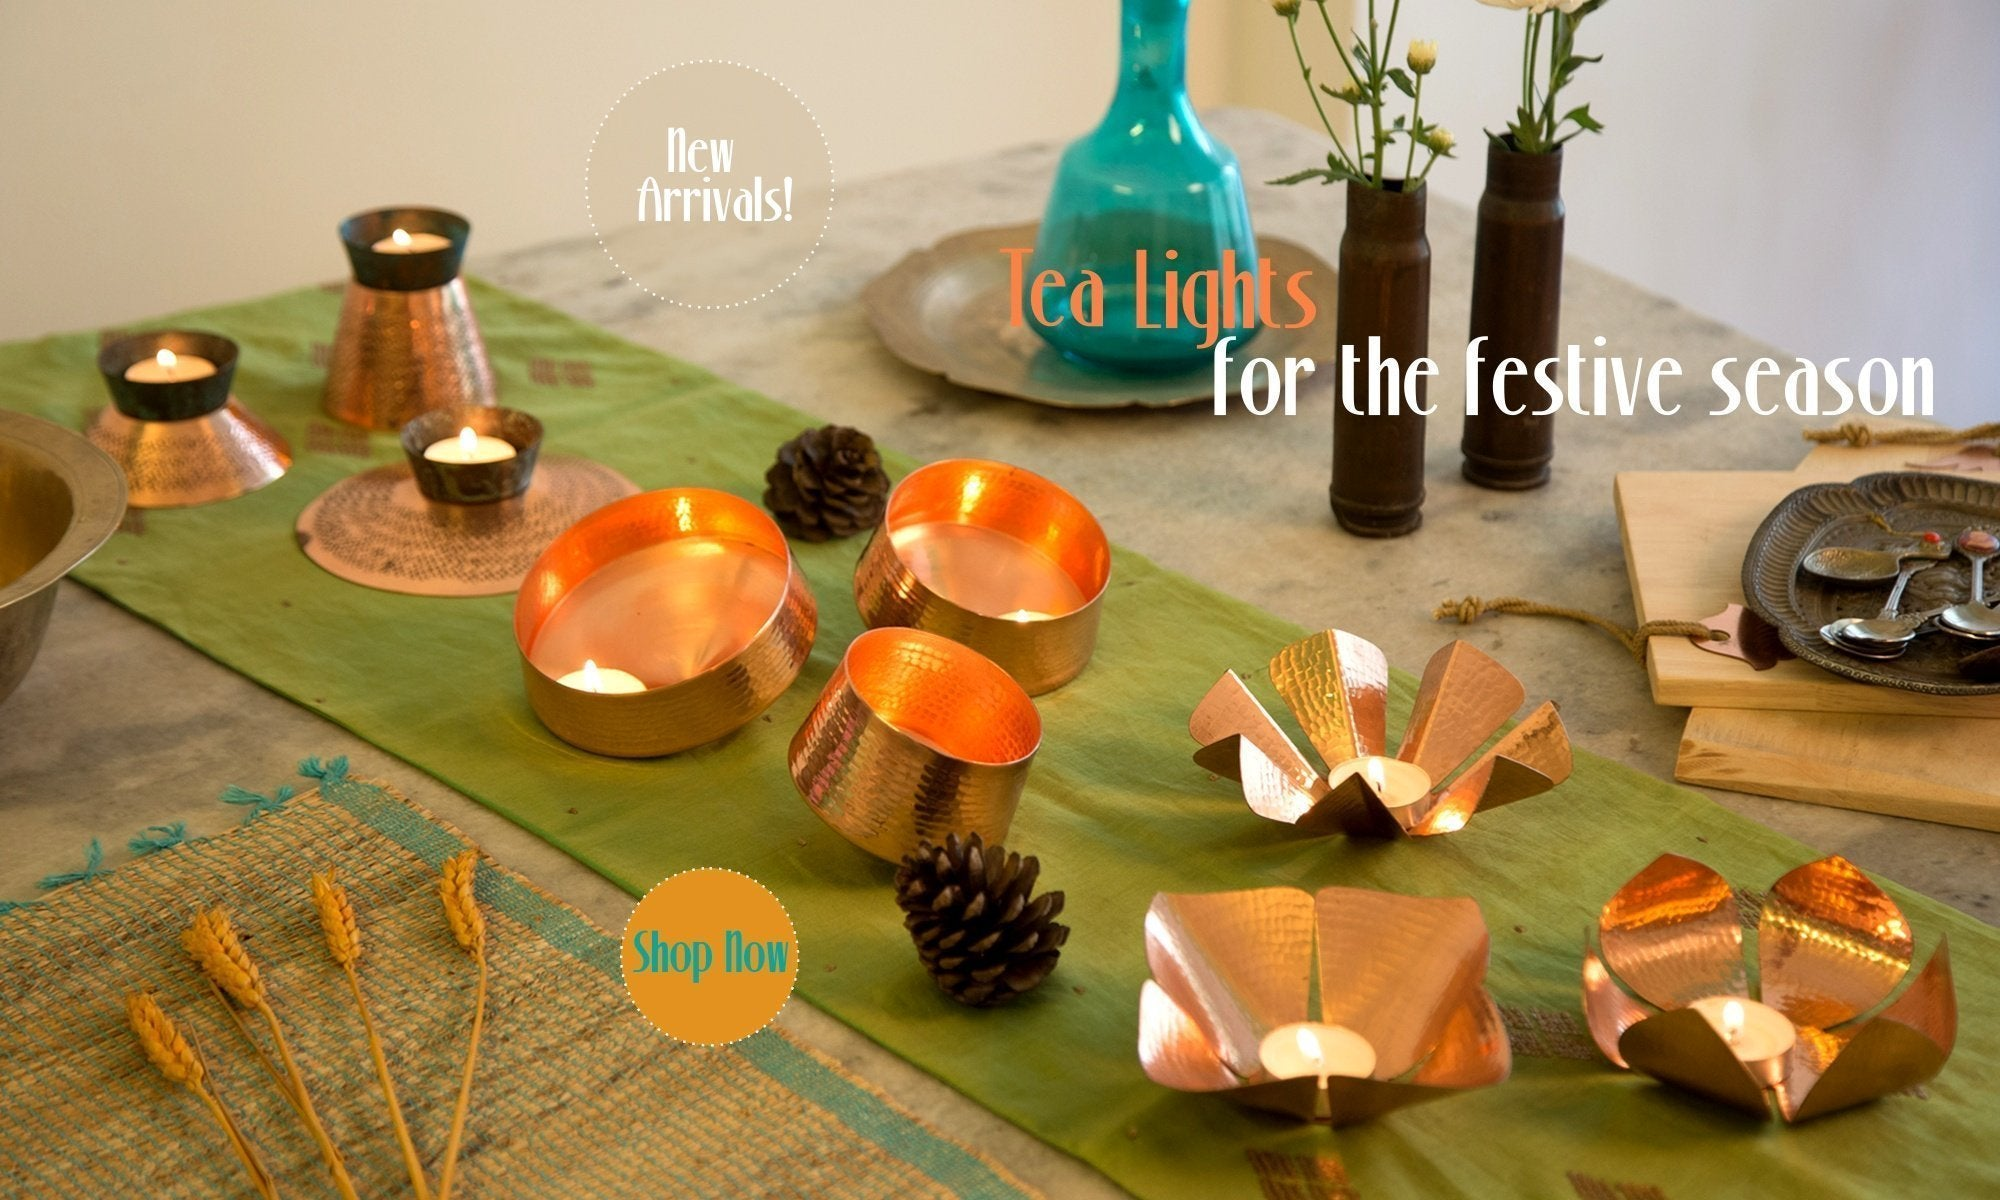 Charged Water in Copper Jug for Health Benefits